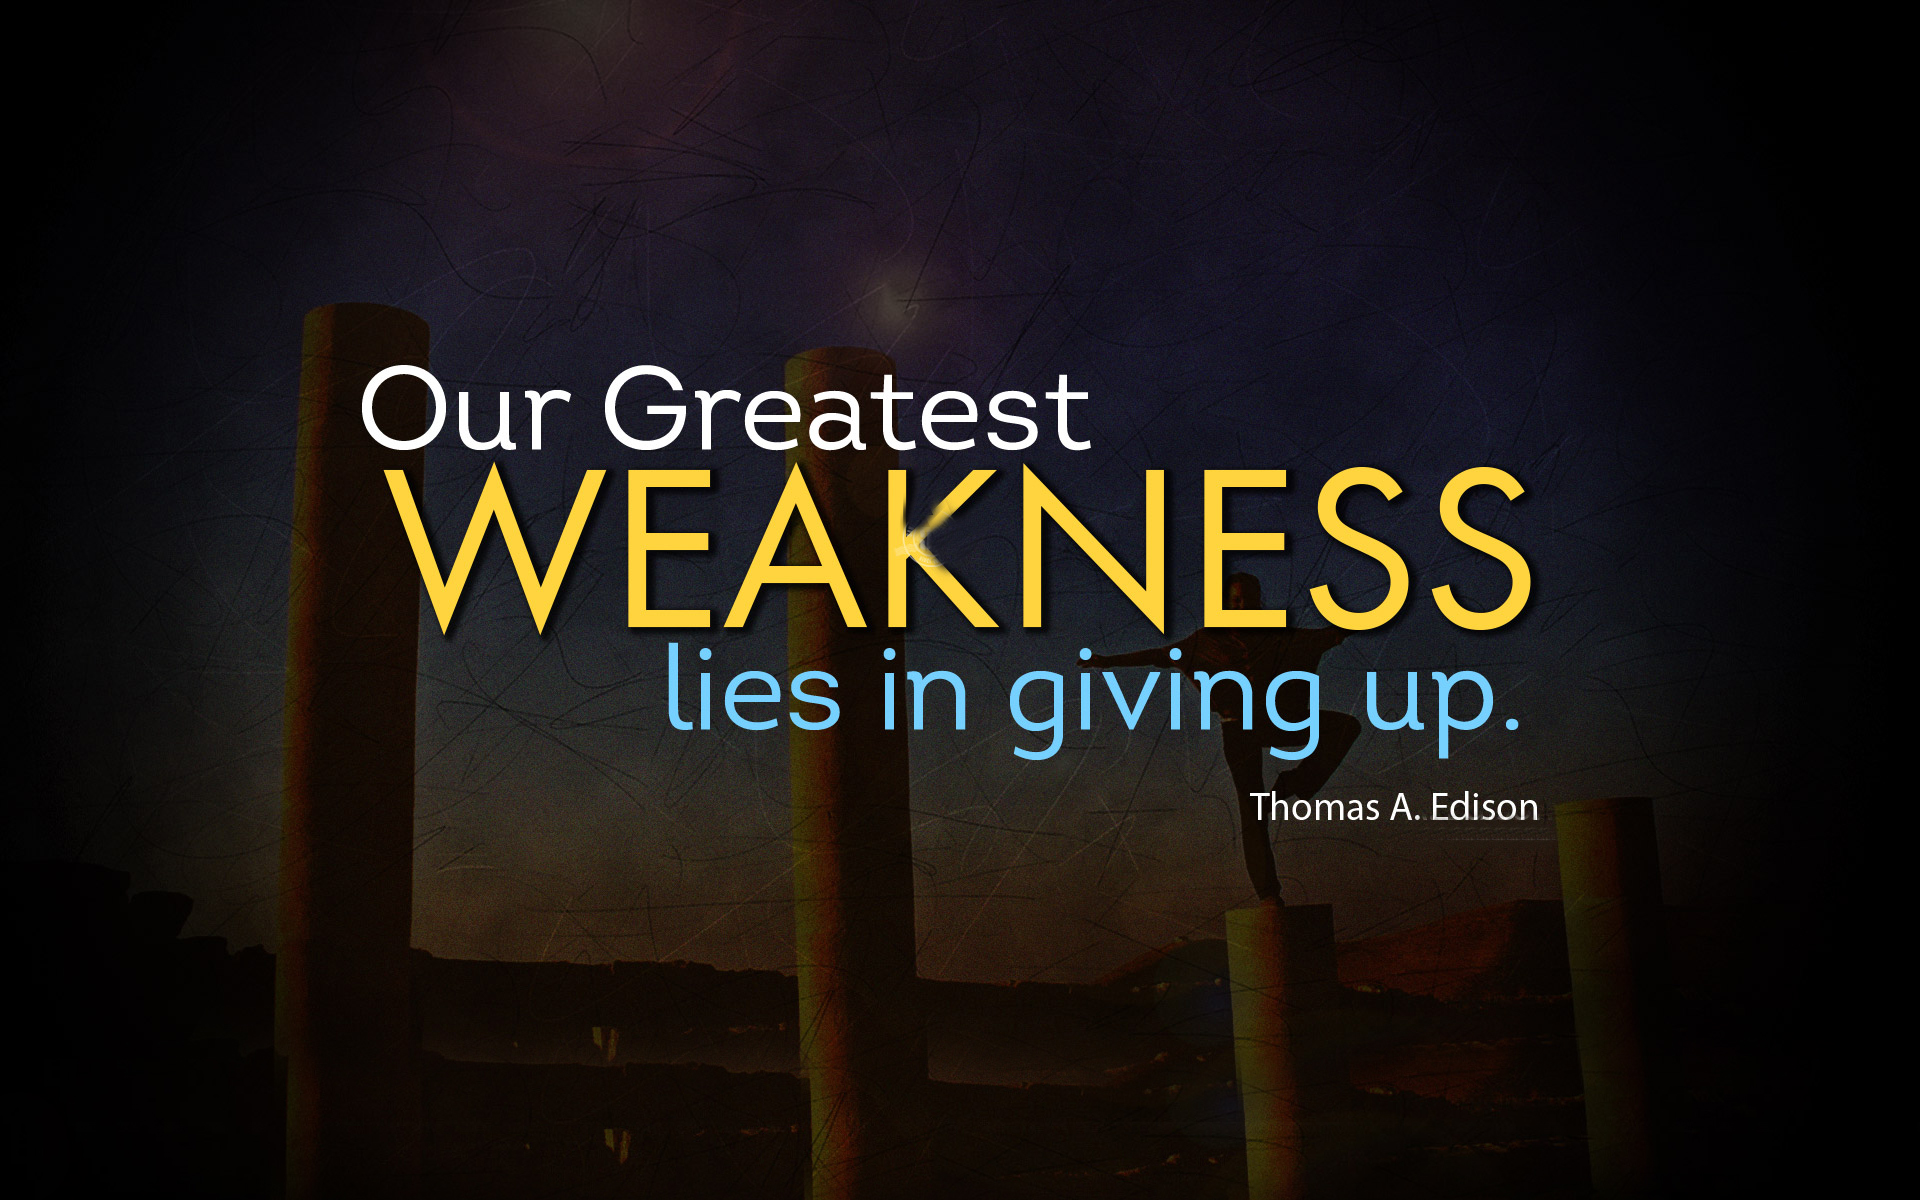 Best Motivational Wallpapers: 30 Best Inspirational Quotes